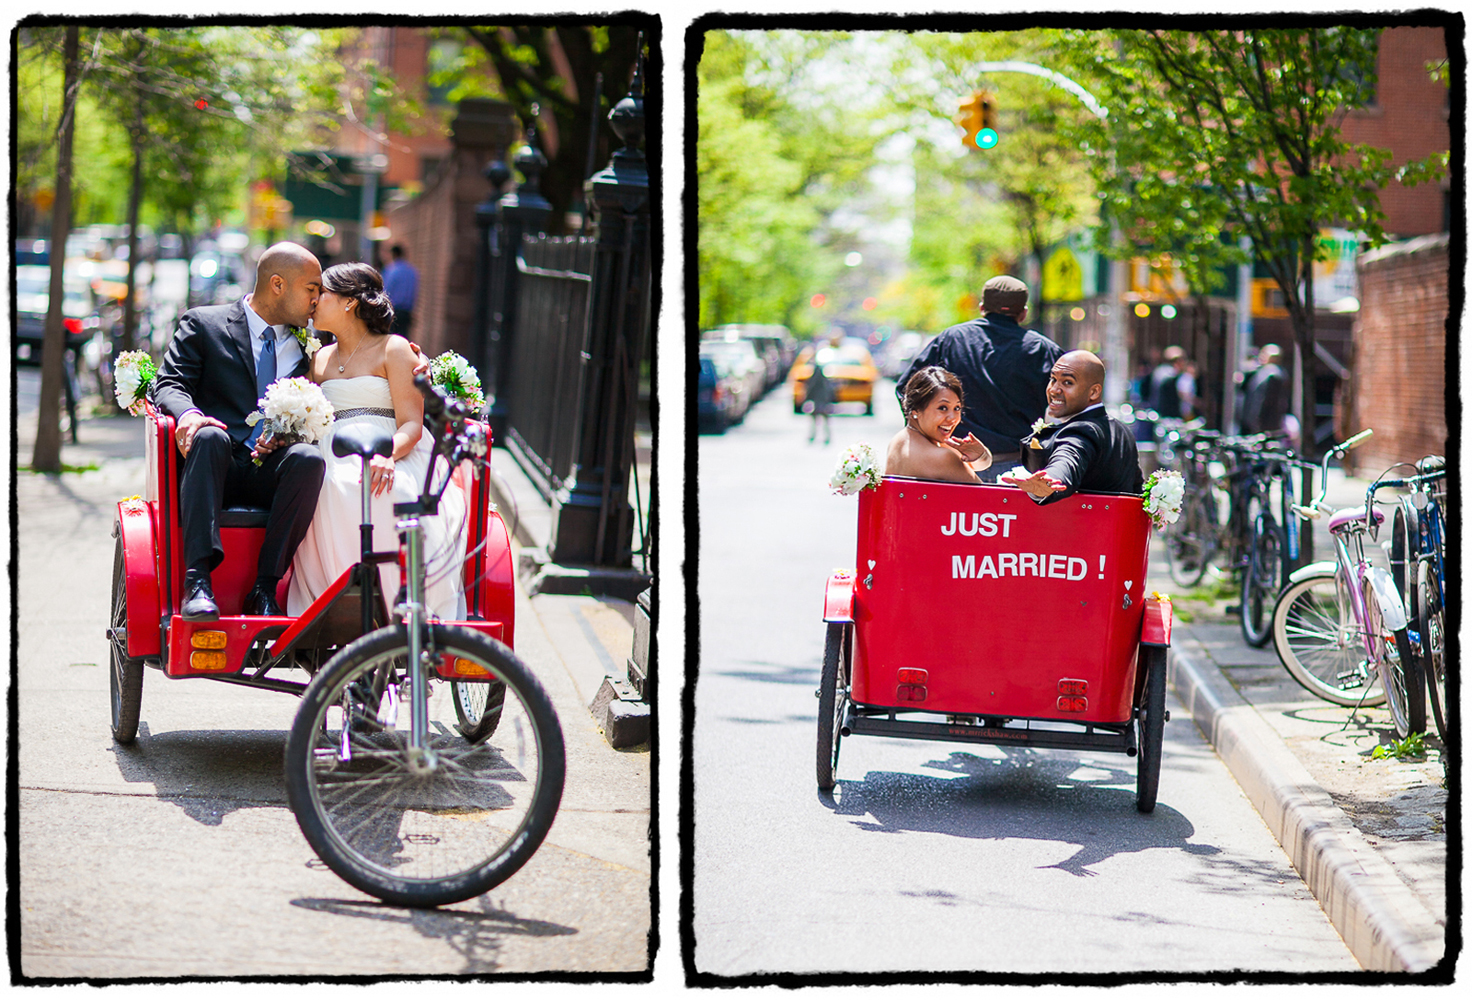 Josh and Karen lined up a sweet ride from their church ceremony to the reception in the East Village.